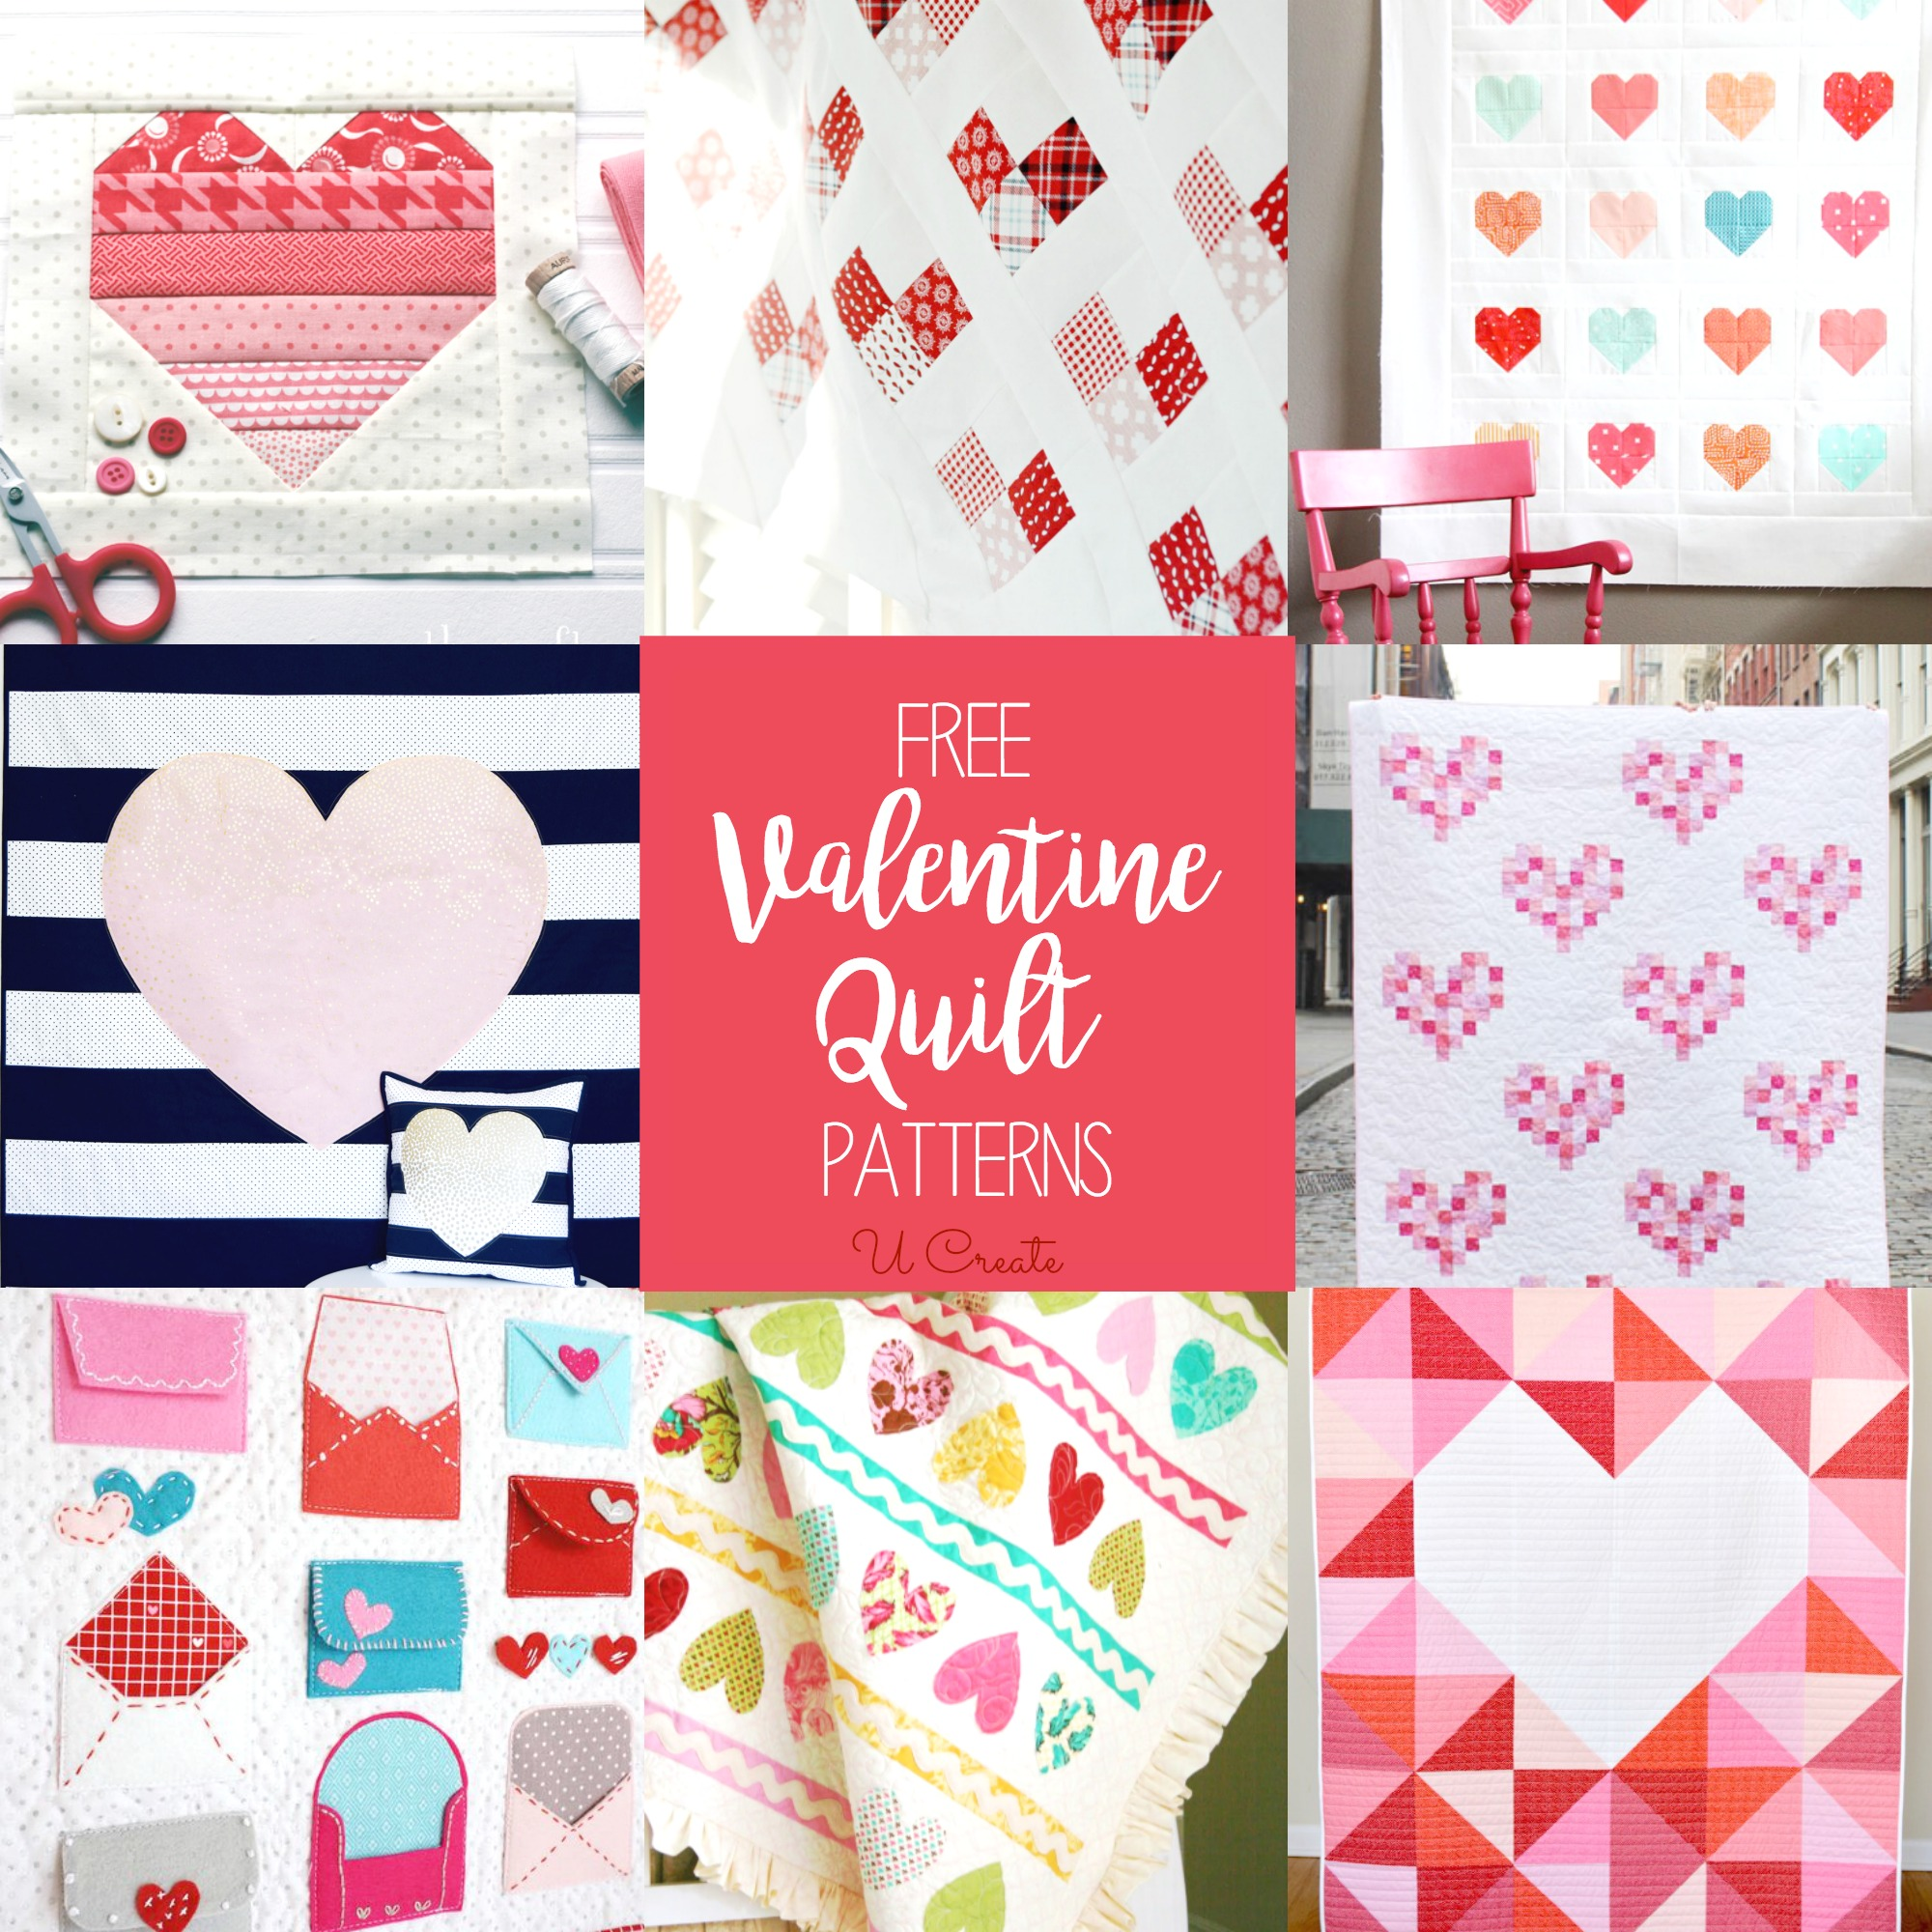 Free Valentine Quilt Patterns